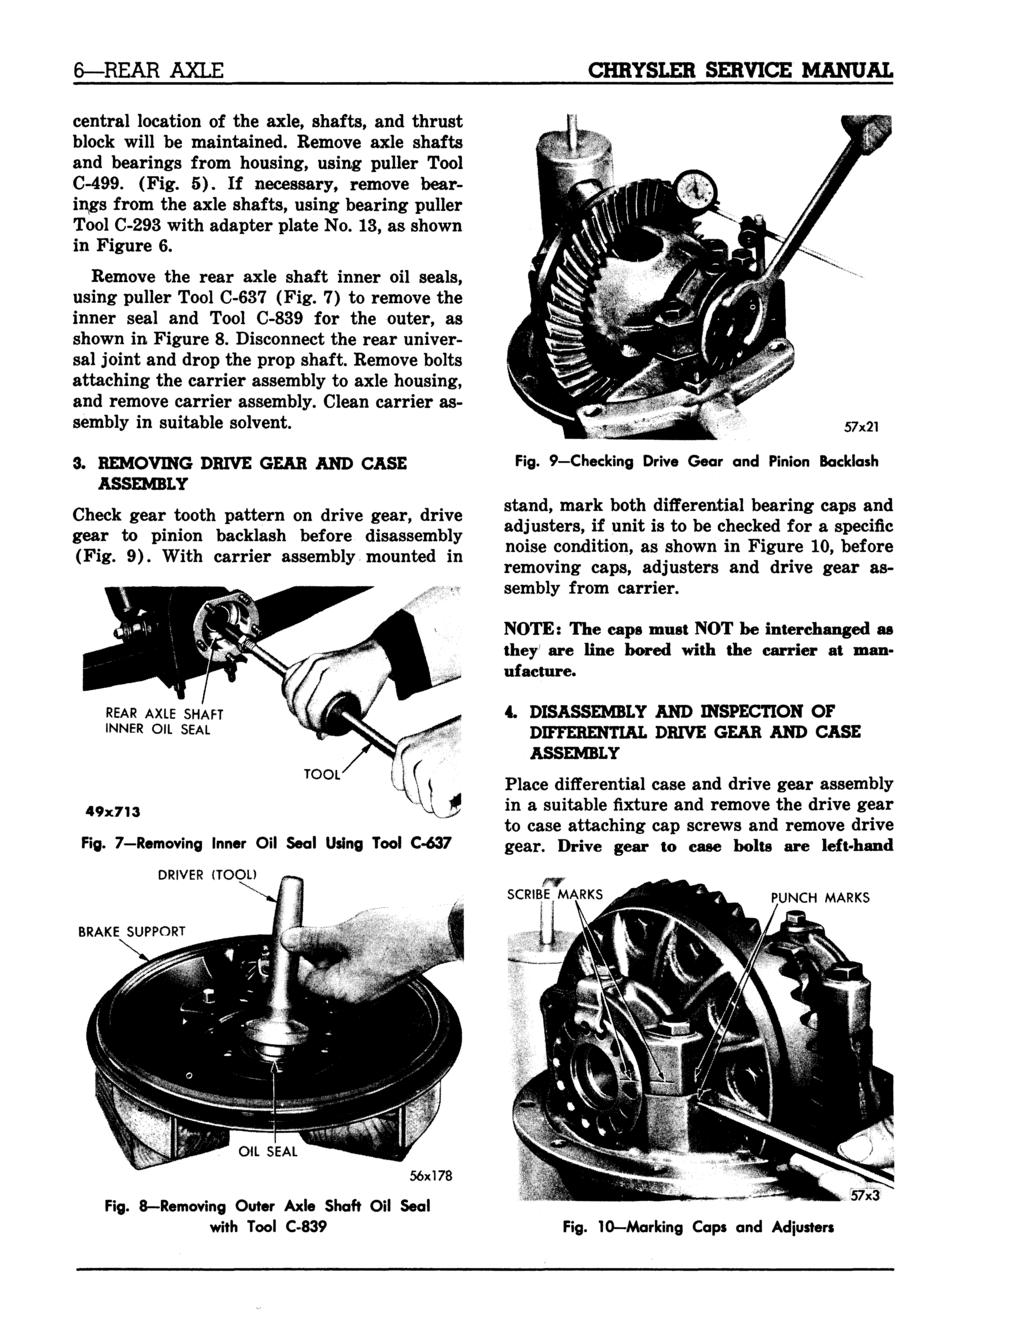 6 REAR AXLE CHRYSLER SERVICE MANUAL central location of the axle, shafts, and thrust block will be maintained. Remove axle shafts and bearings from housing, using puller Tool C-499. (Fig. 5).